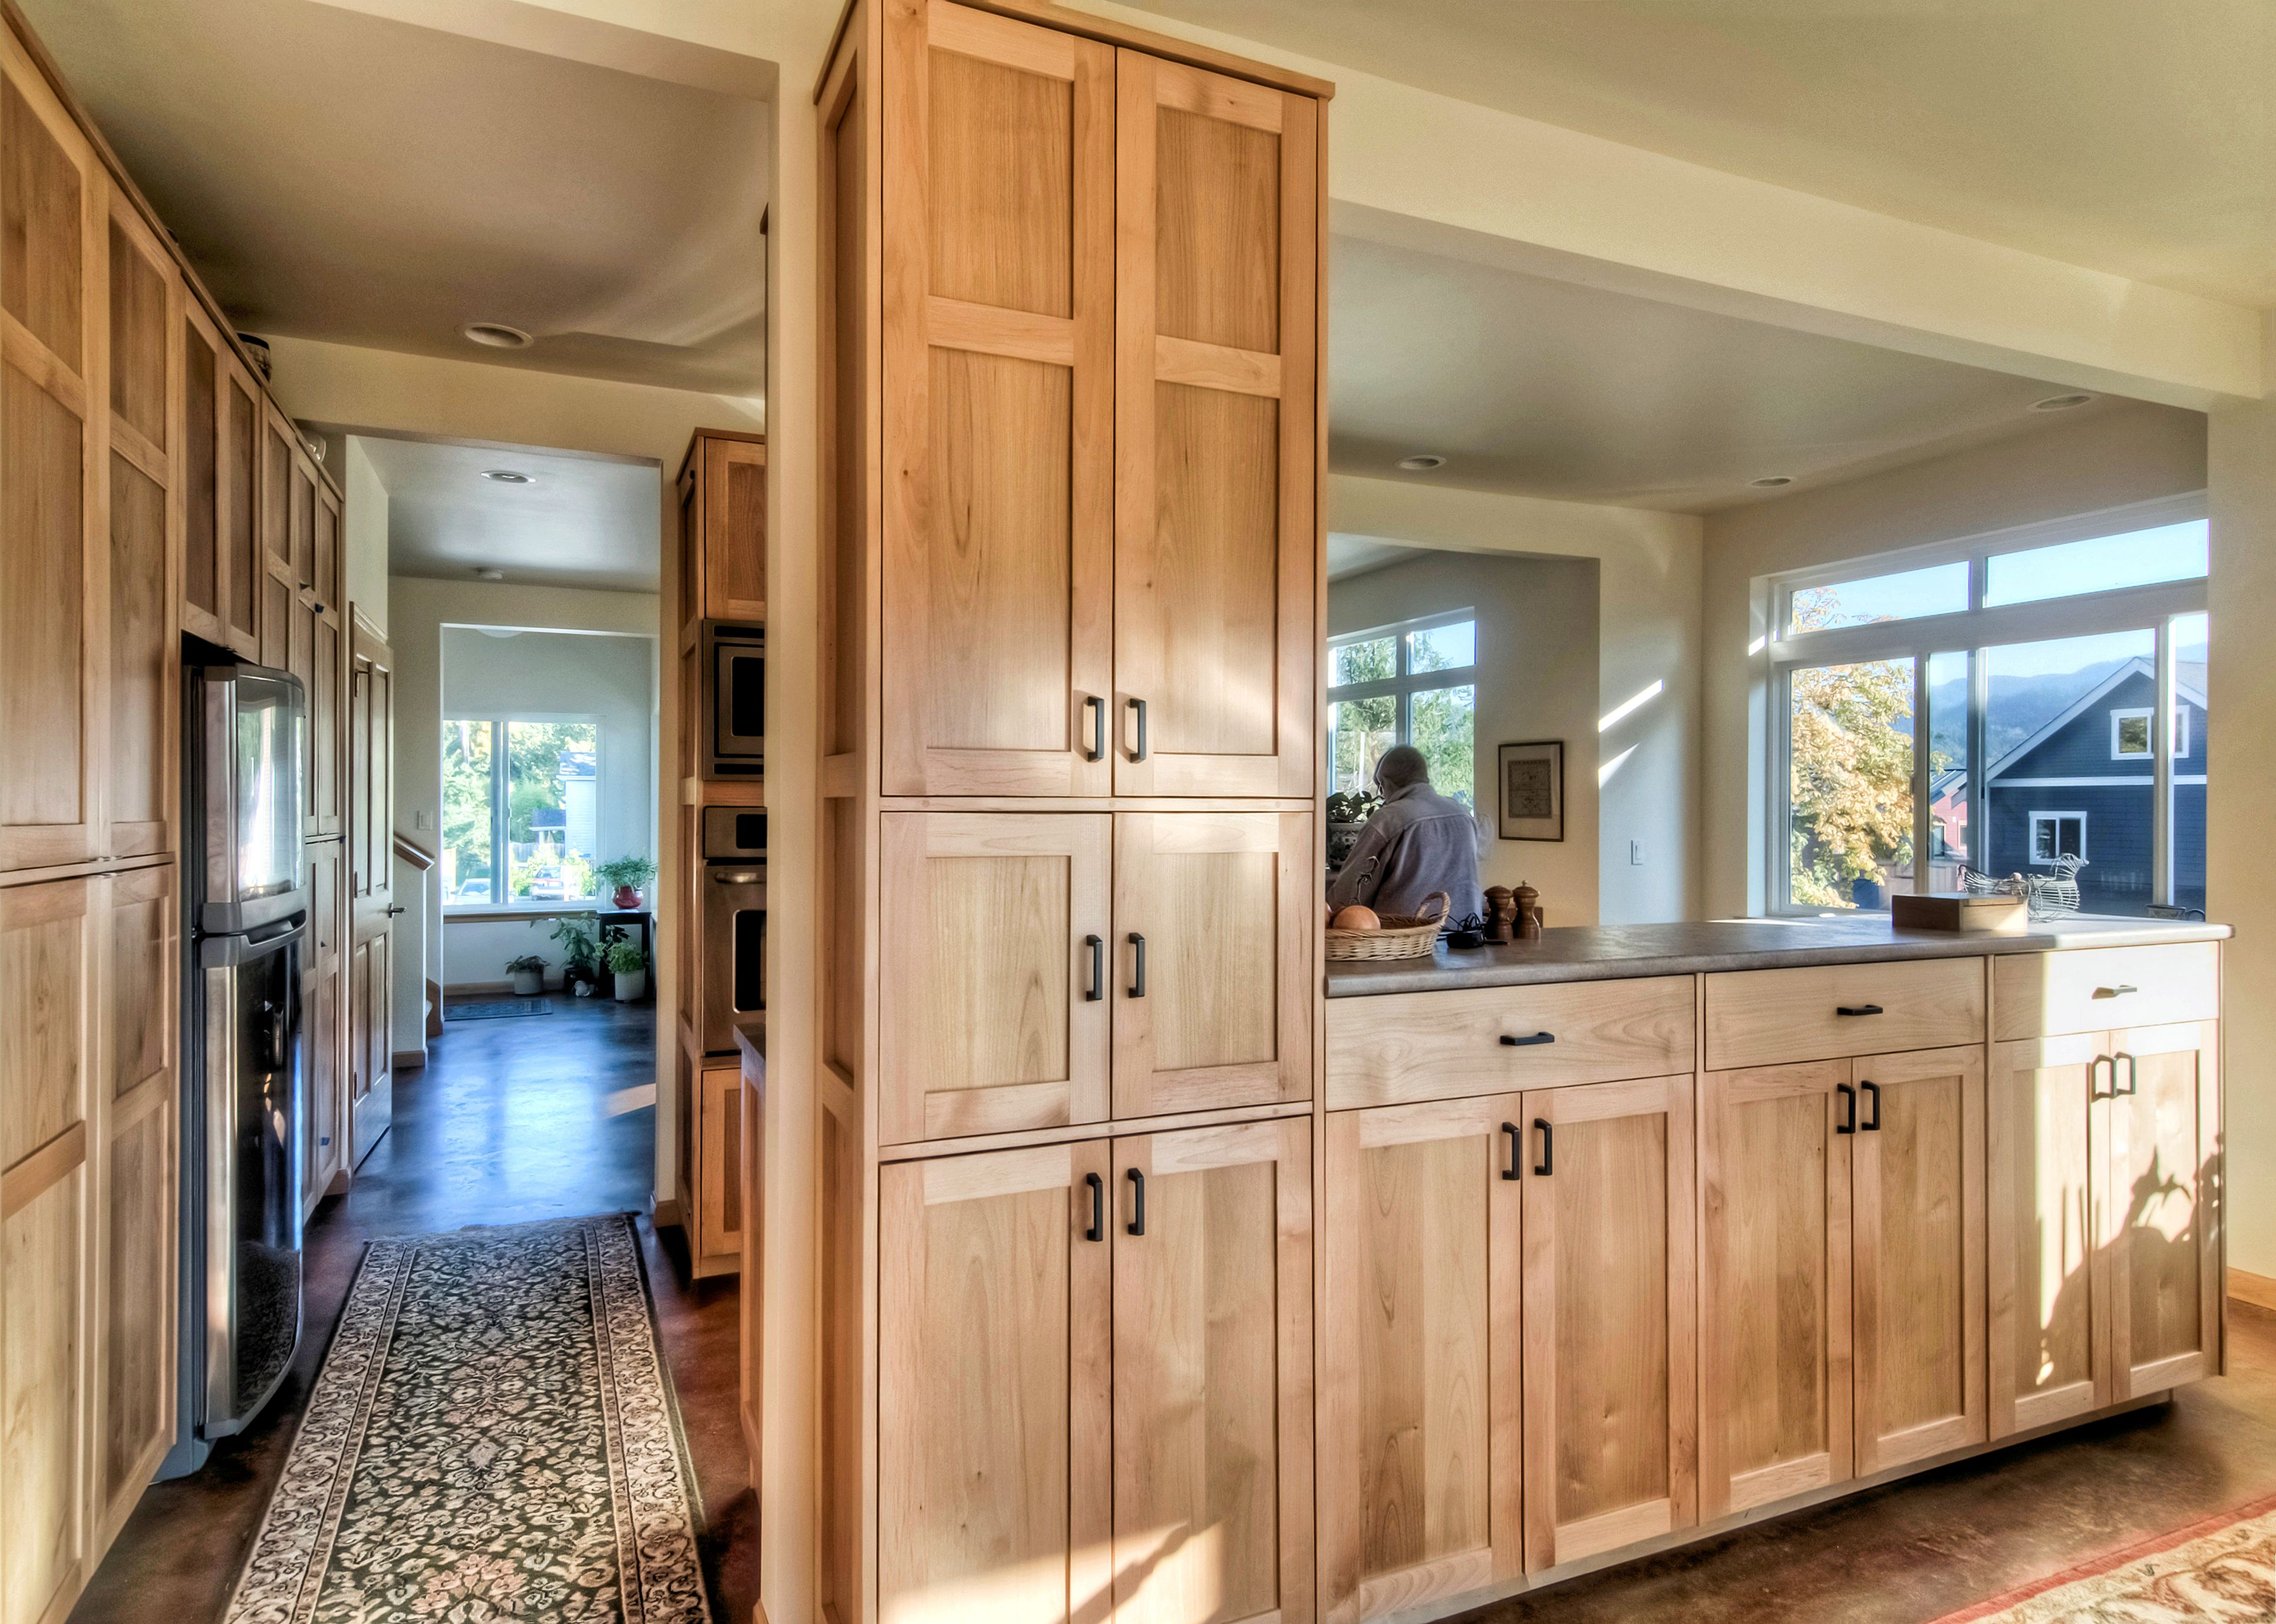 This Open Kitchen Design Features Custom Maple Cabinetry Stained Concrete Floors And Counters To Dining And Living Rooms Kitchen Design Open Home Co Housing